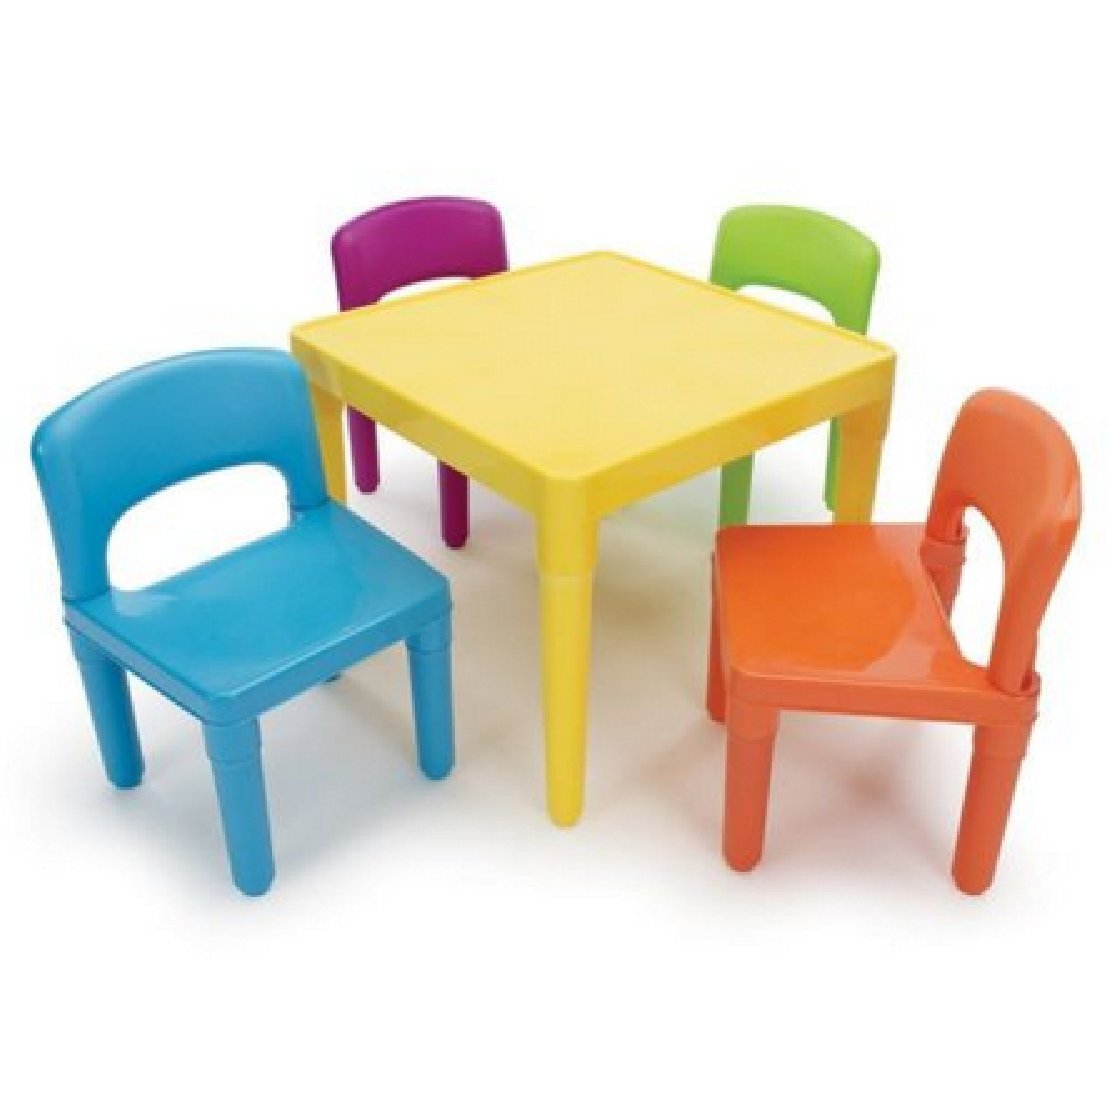 Kids Outdoor Table And Chairs How To Choose Chairs For Kids Goodworksfurniture